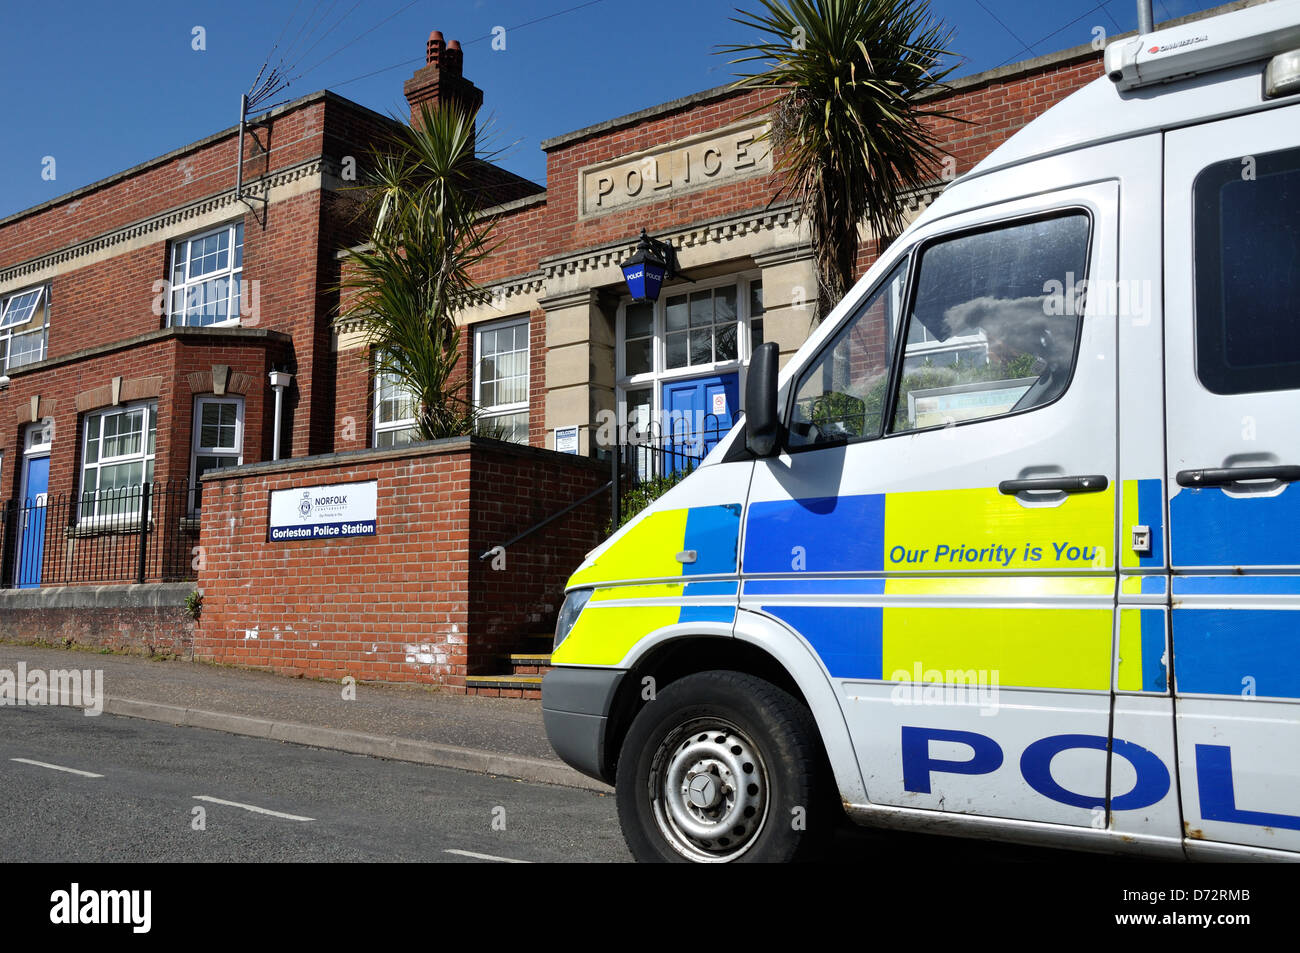 Norfolk Police Stock Photos & Norfolk Police Stock Images